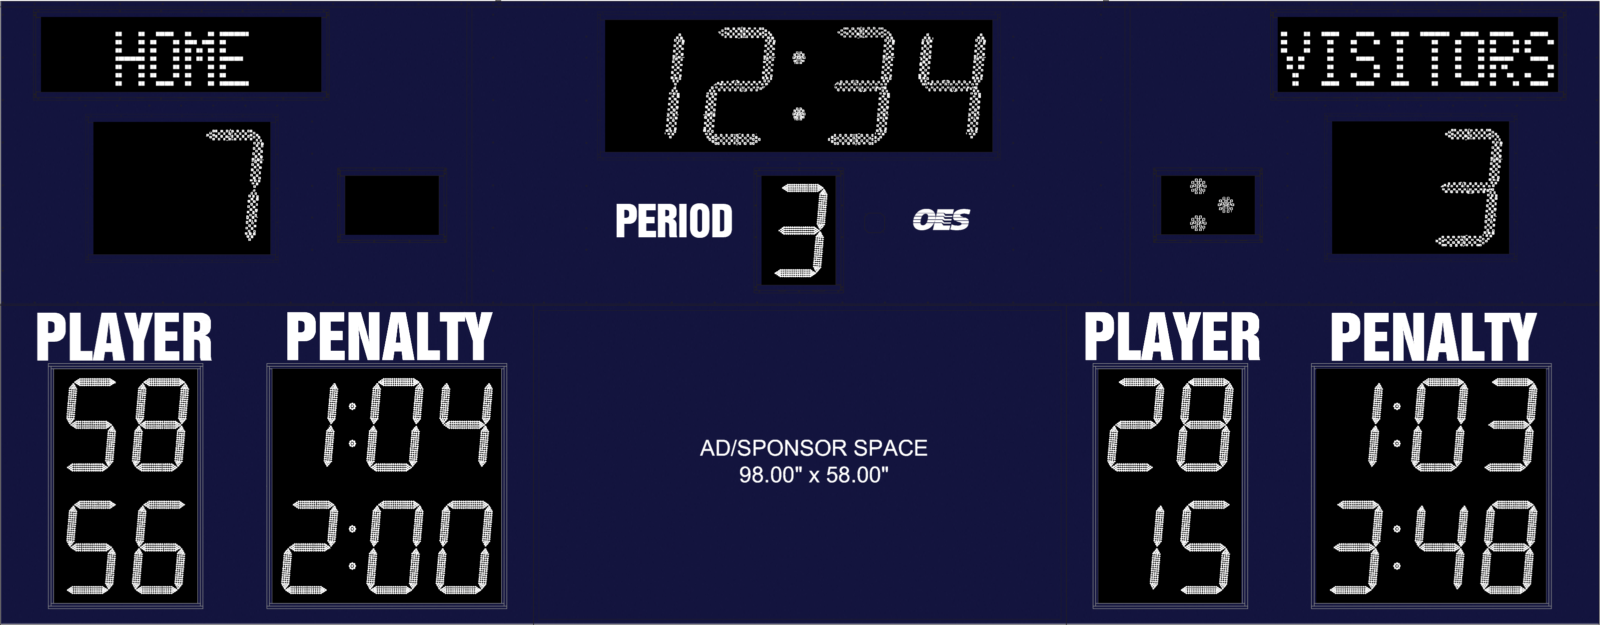 hockey scoreboard with ad space